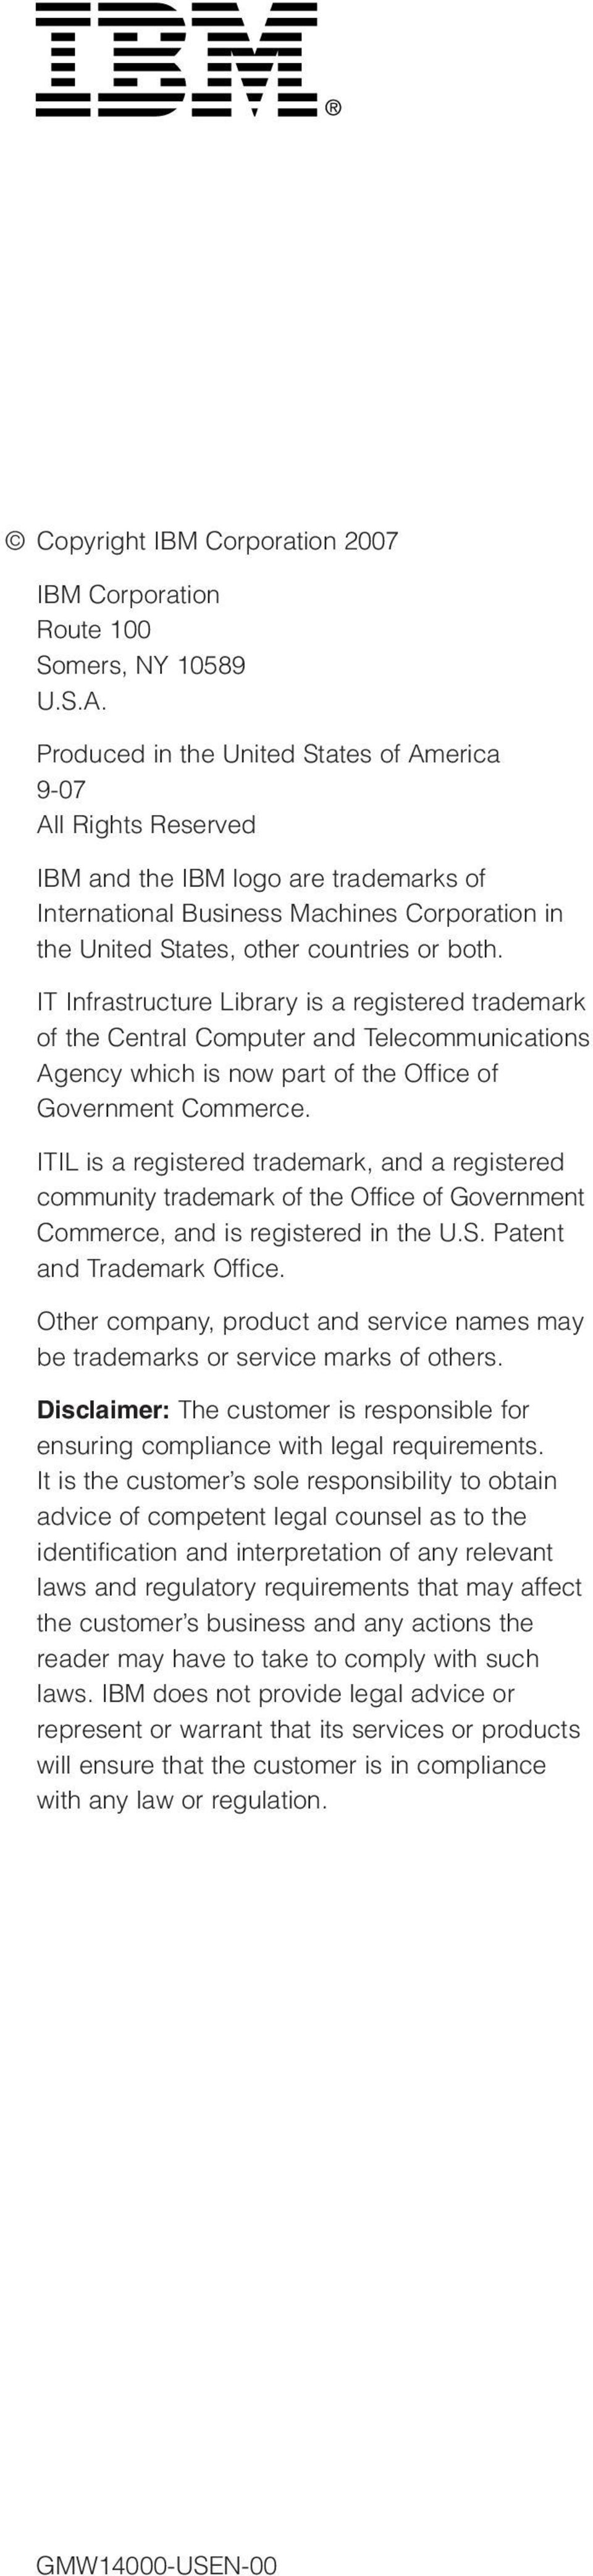 IT Infrastructure Library is a registered trademark of the Central Computer and Telecommunications Agency which is now part of the Office of Government Commerce.